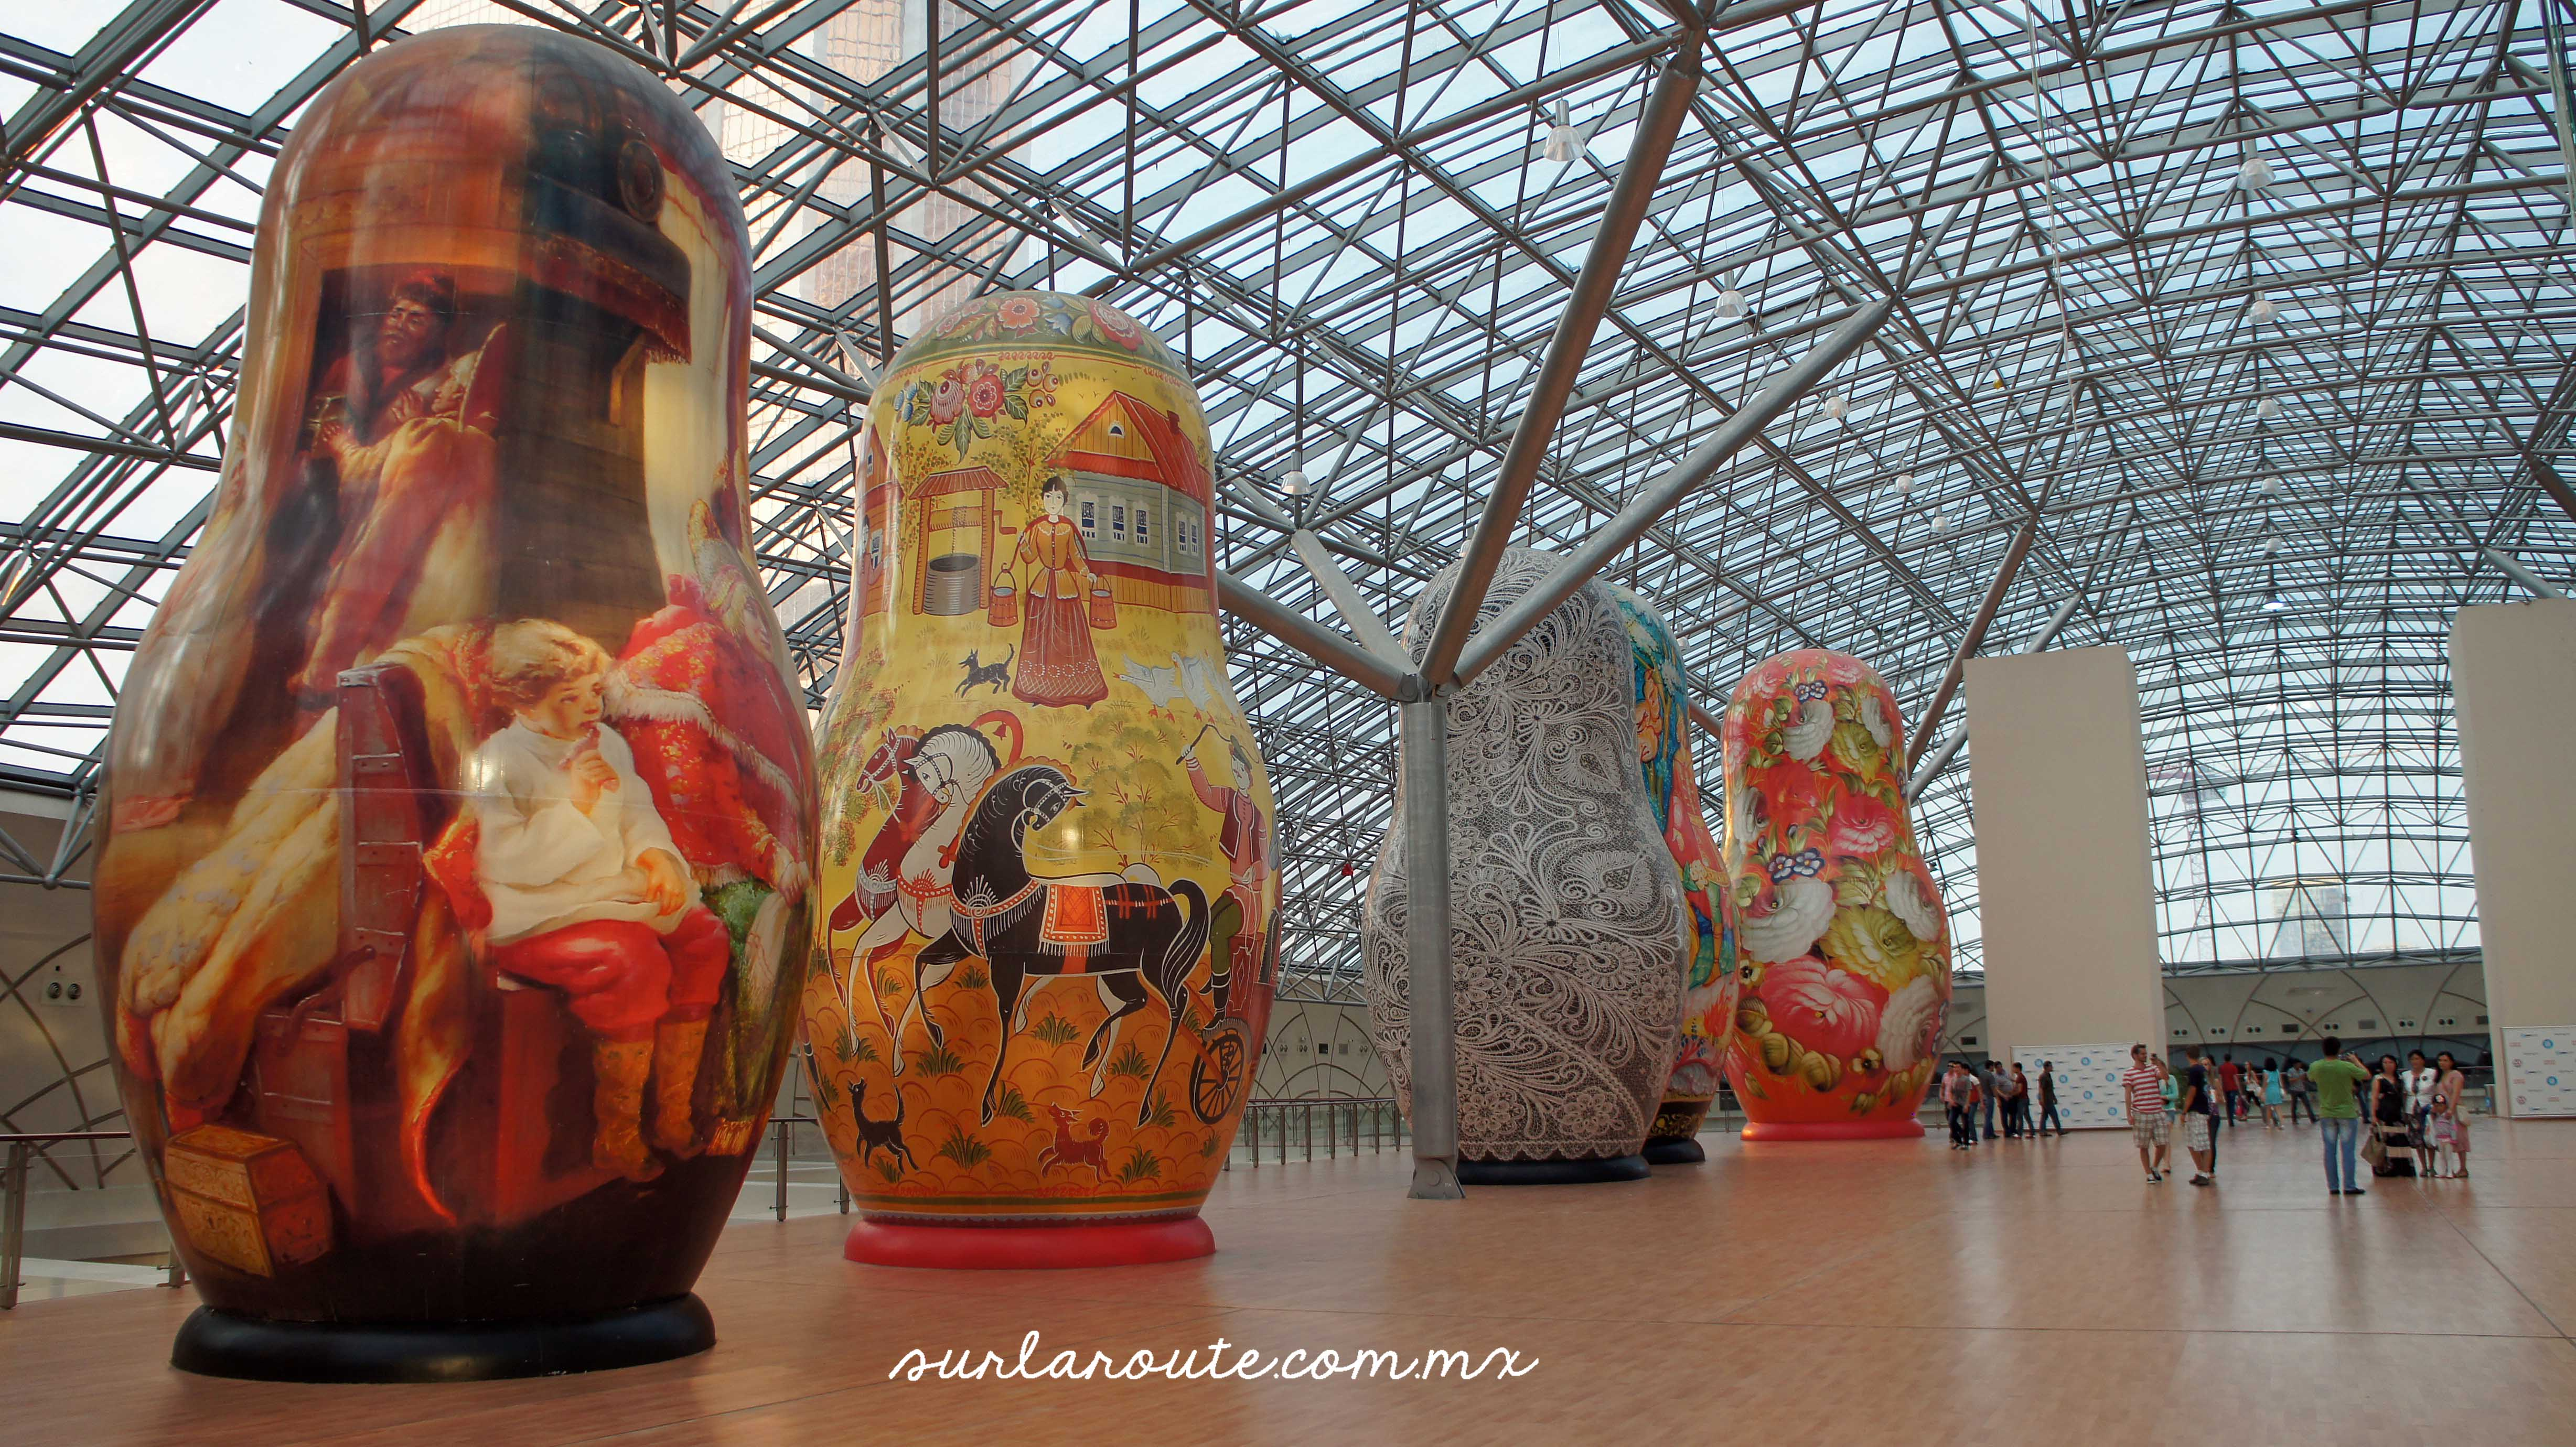 Giant Matryoshkas - Гигантские матрешки in Moscow city.